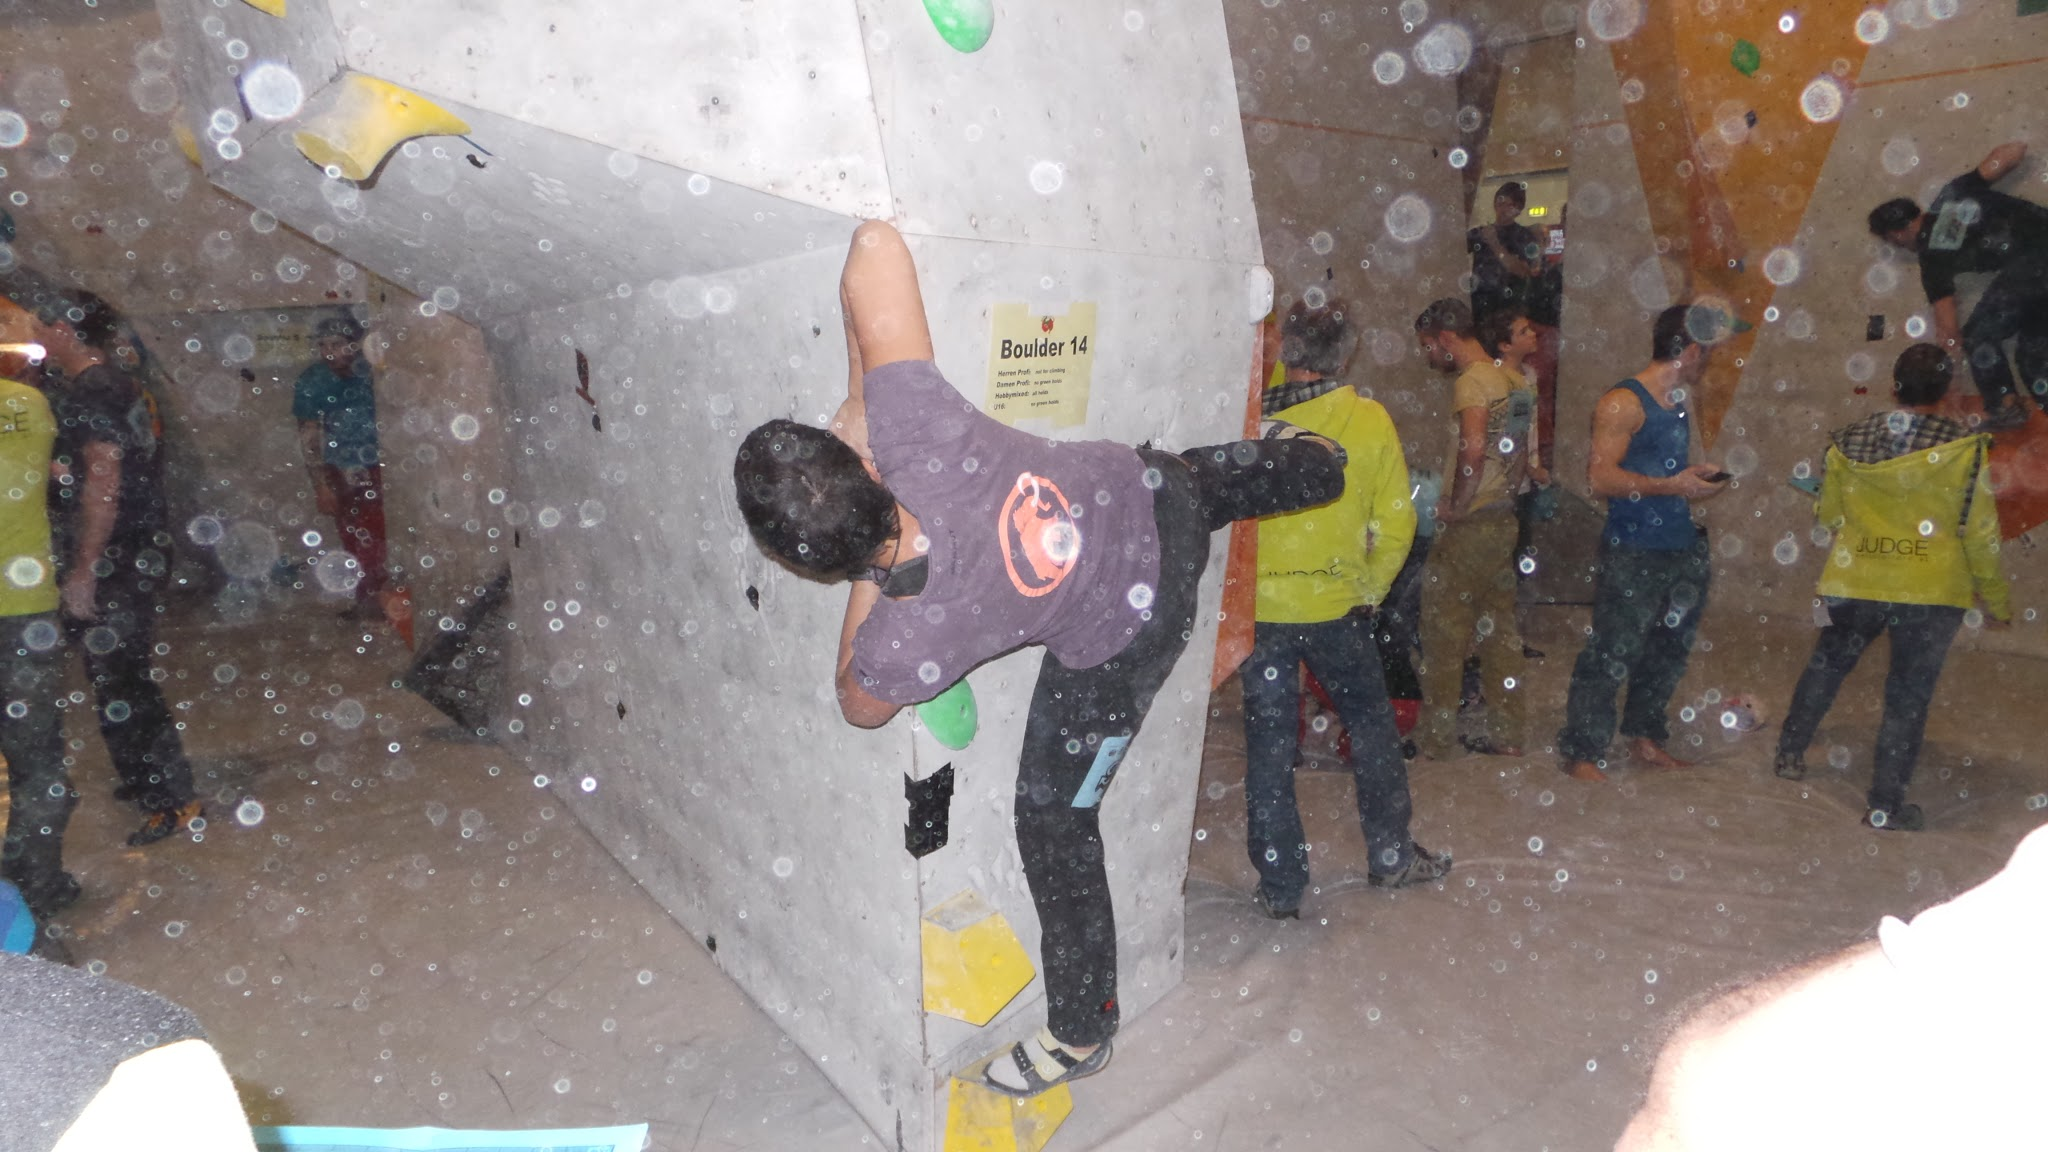 Boulderday CAC